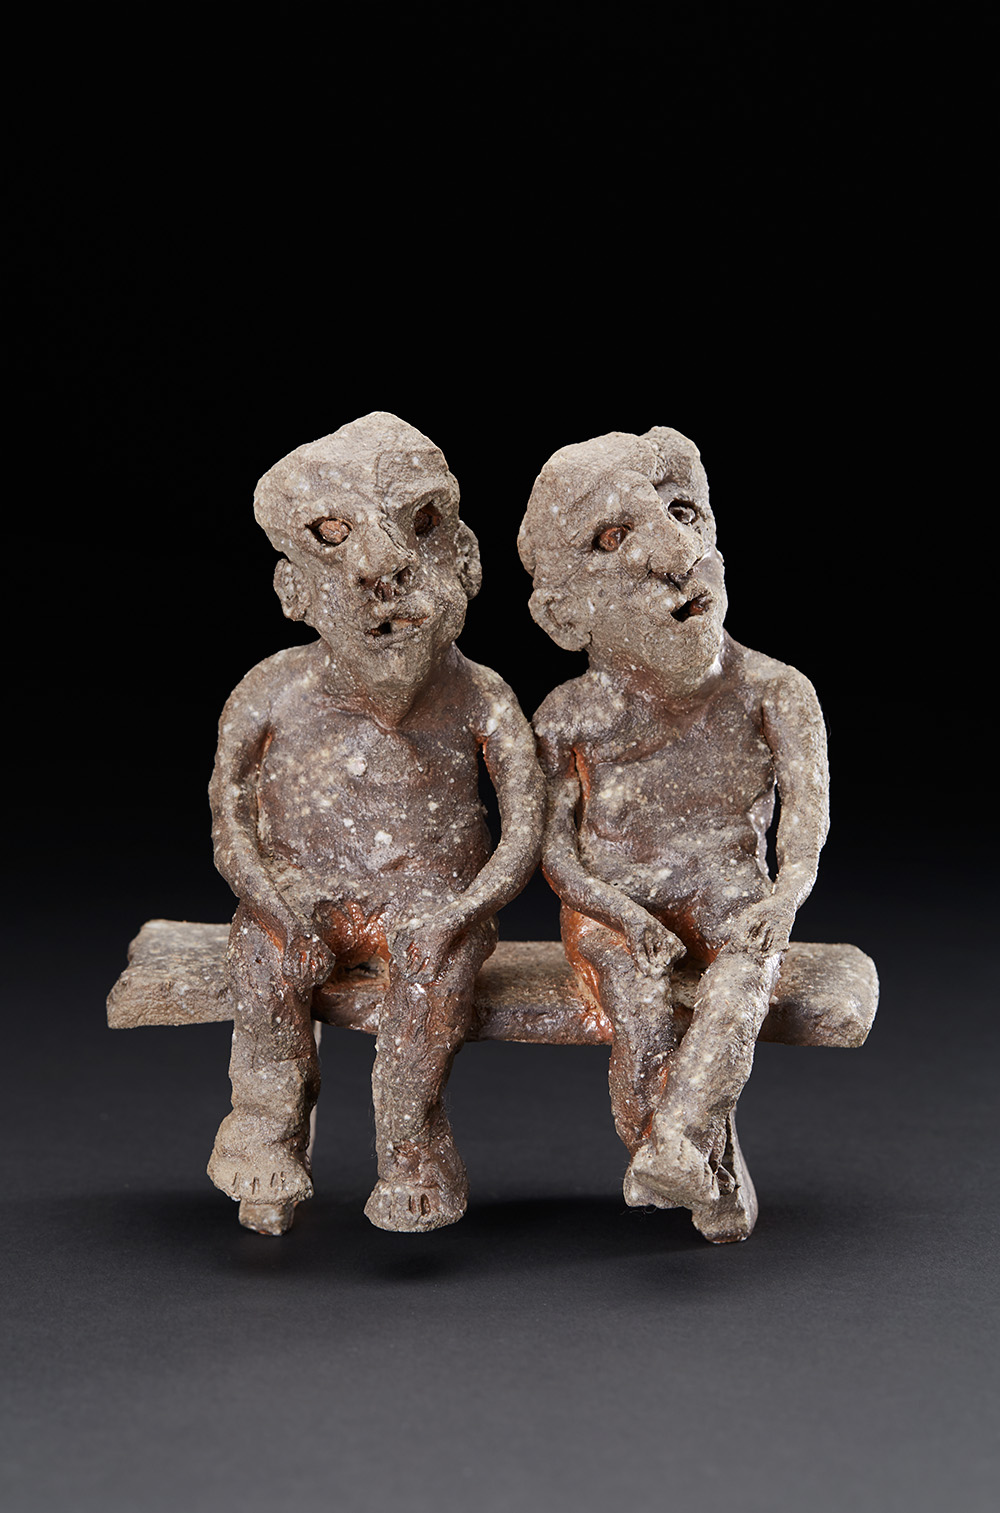 Chrissy Callas    2 Benched Men  , 2005 Ceramic 7.5 x 7 x 3.5 inches 19.1 x 17.8 x 8.9 cm CCa 39